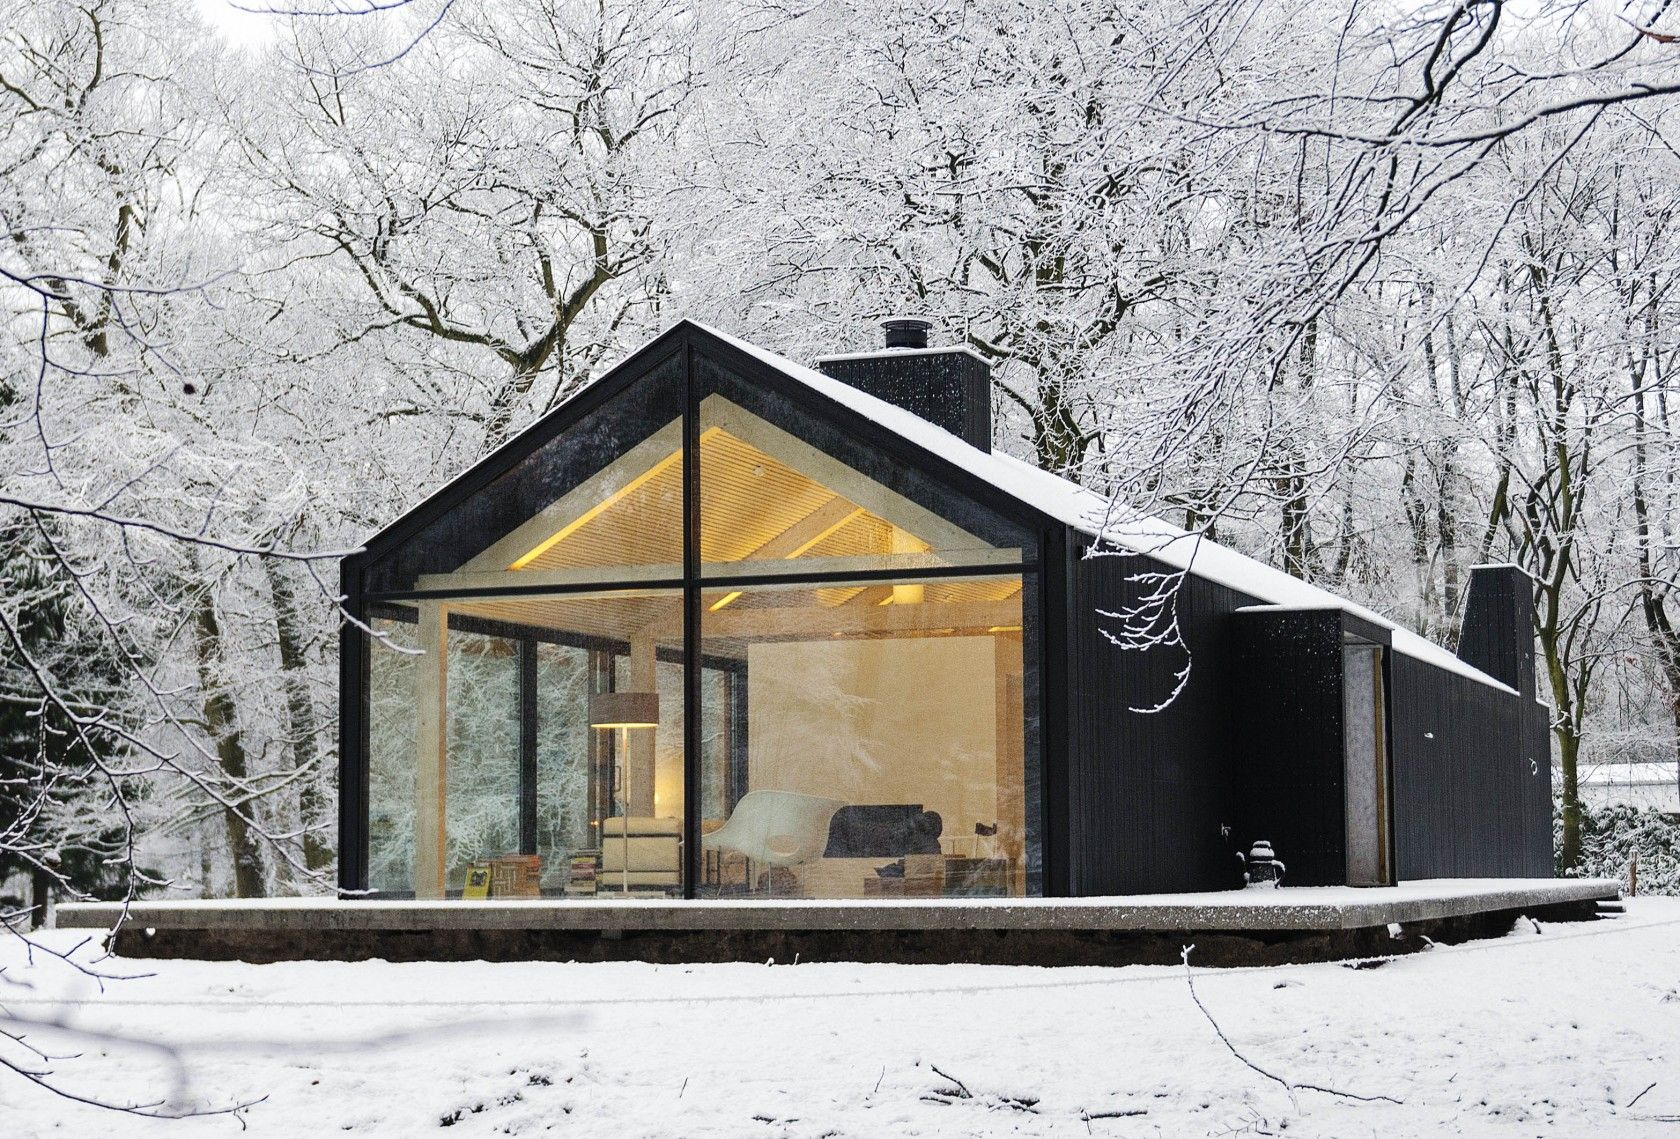 Design Inspiration: Modern Cabin Love #cabinlove #architecture